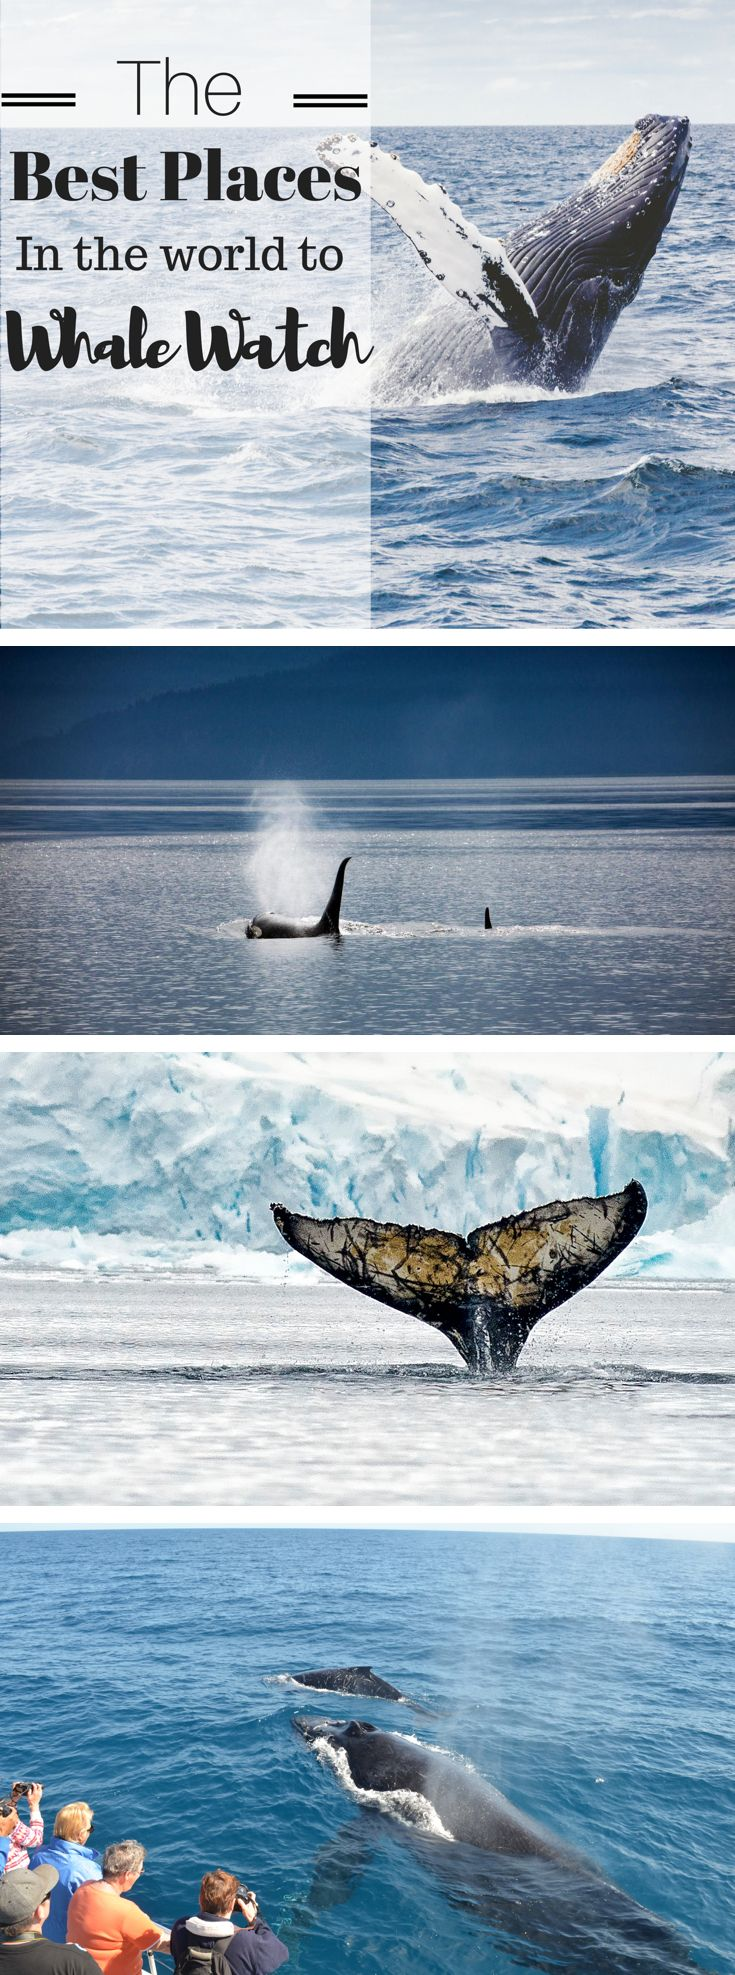 7 of the best places in the world to go whale watching, from Alaska to Australia, and Antarctica to South Africa.